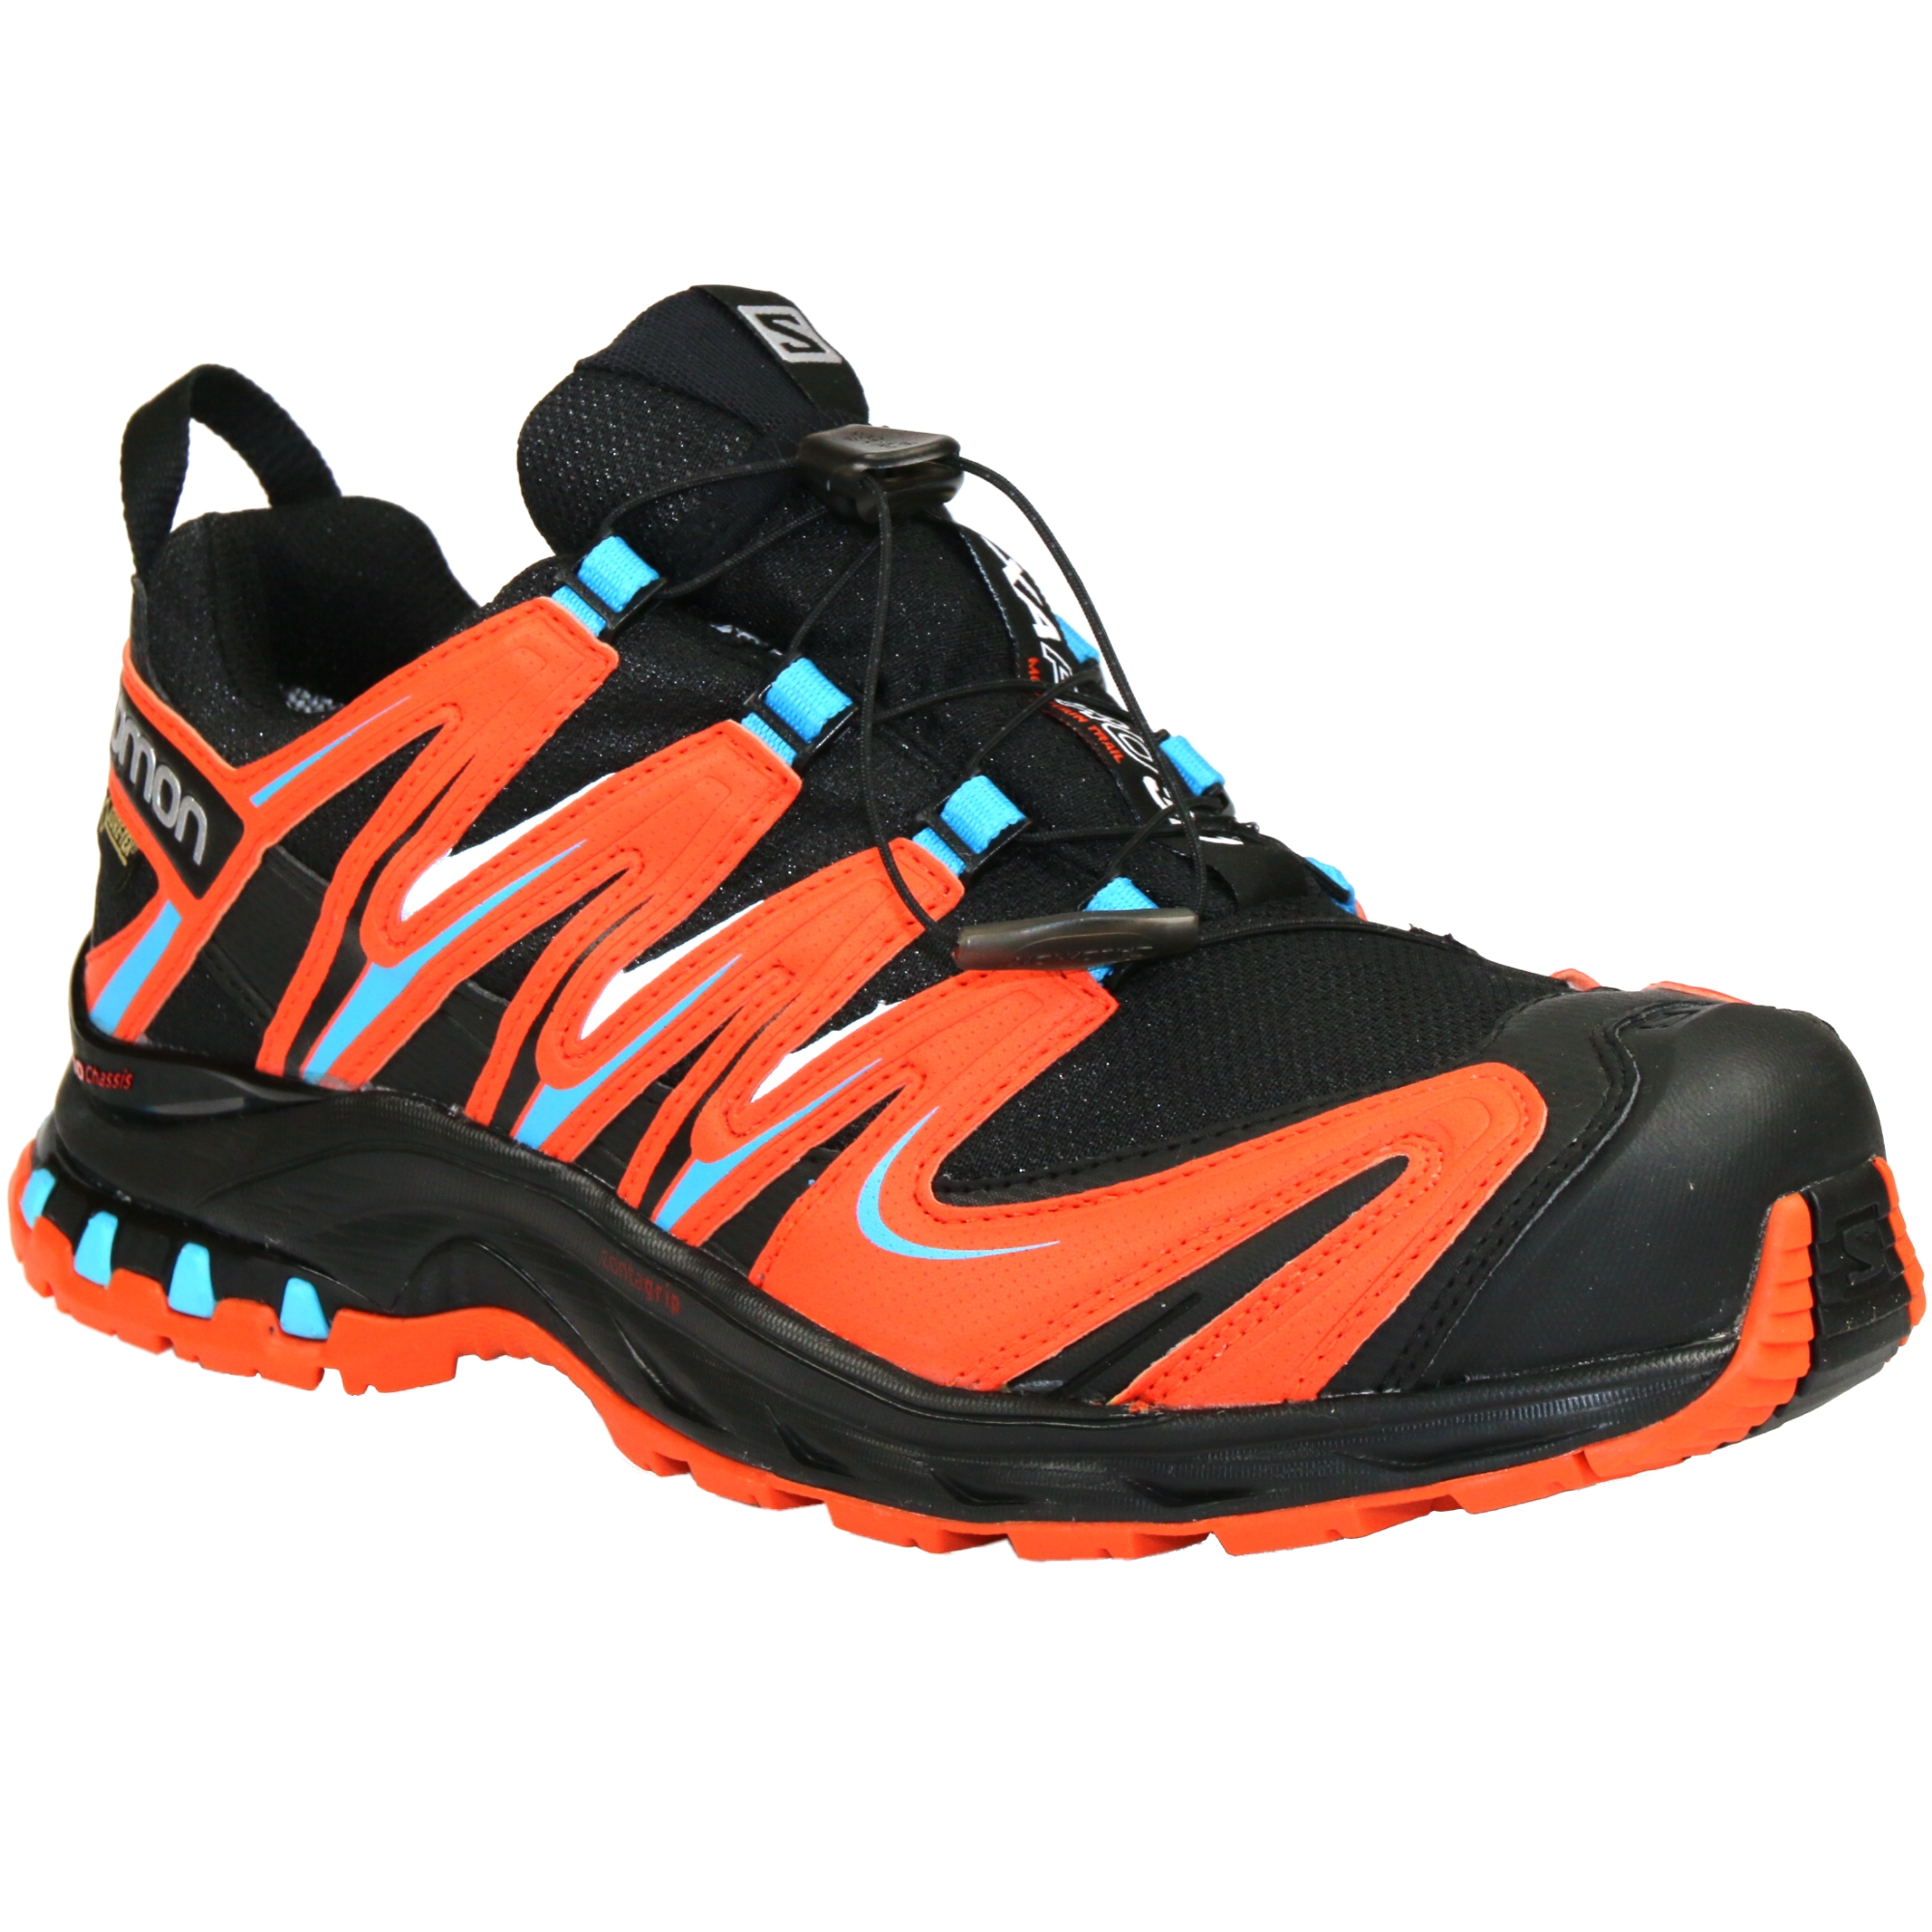 salomon xa pro 3d gtx gore tex schuhe wanderschuhe trail running trekking herren ebay. Black Bedroom Furniture Sets. Home Design Ideas